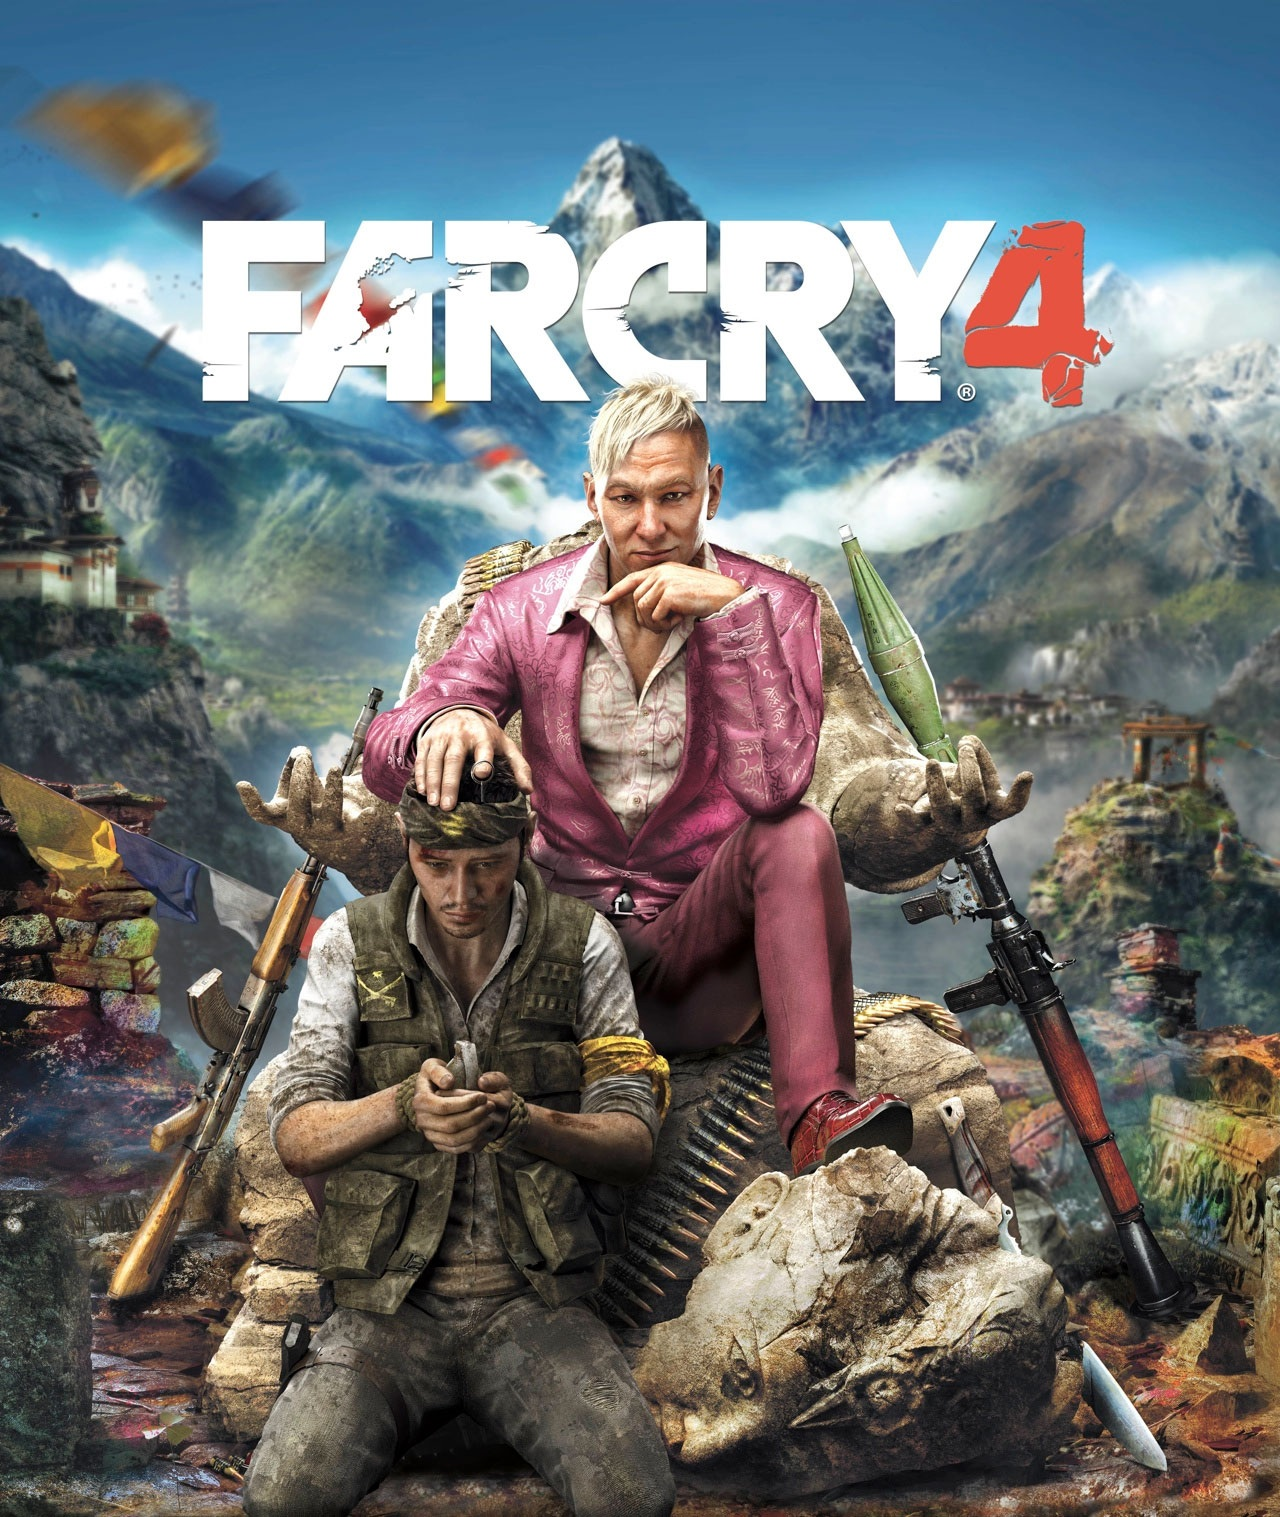 far cry 4 far cry wiki fandom powered by wikia. Black Bedroom Furniture Sets. Home Design Ideas